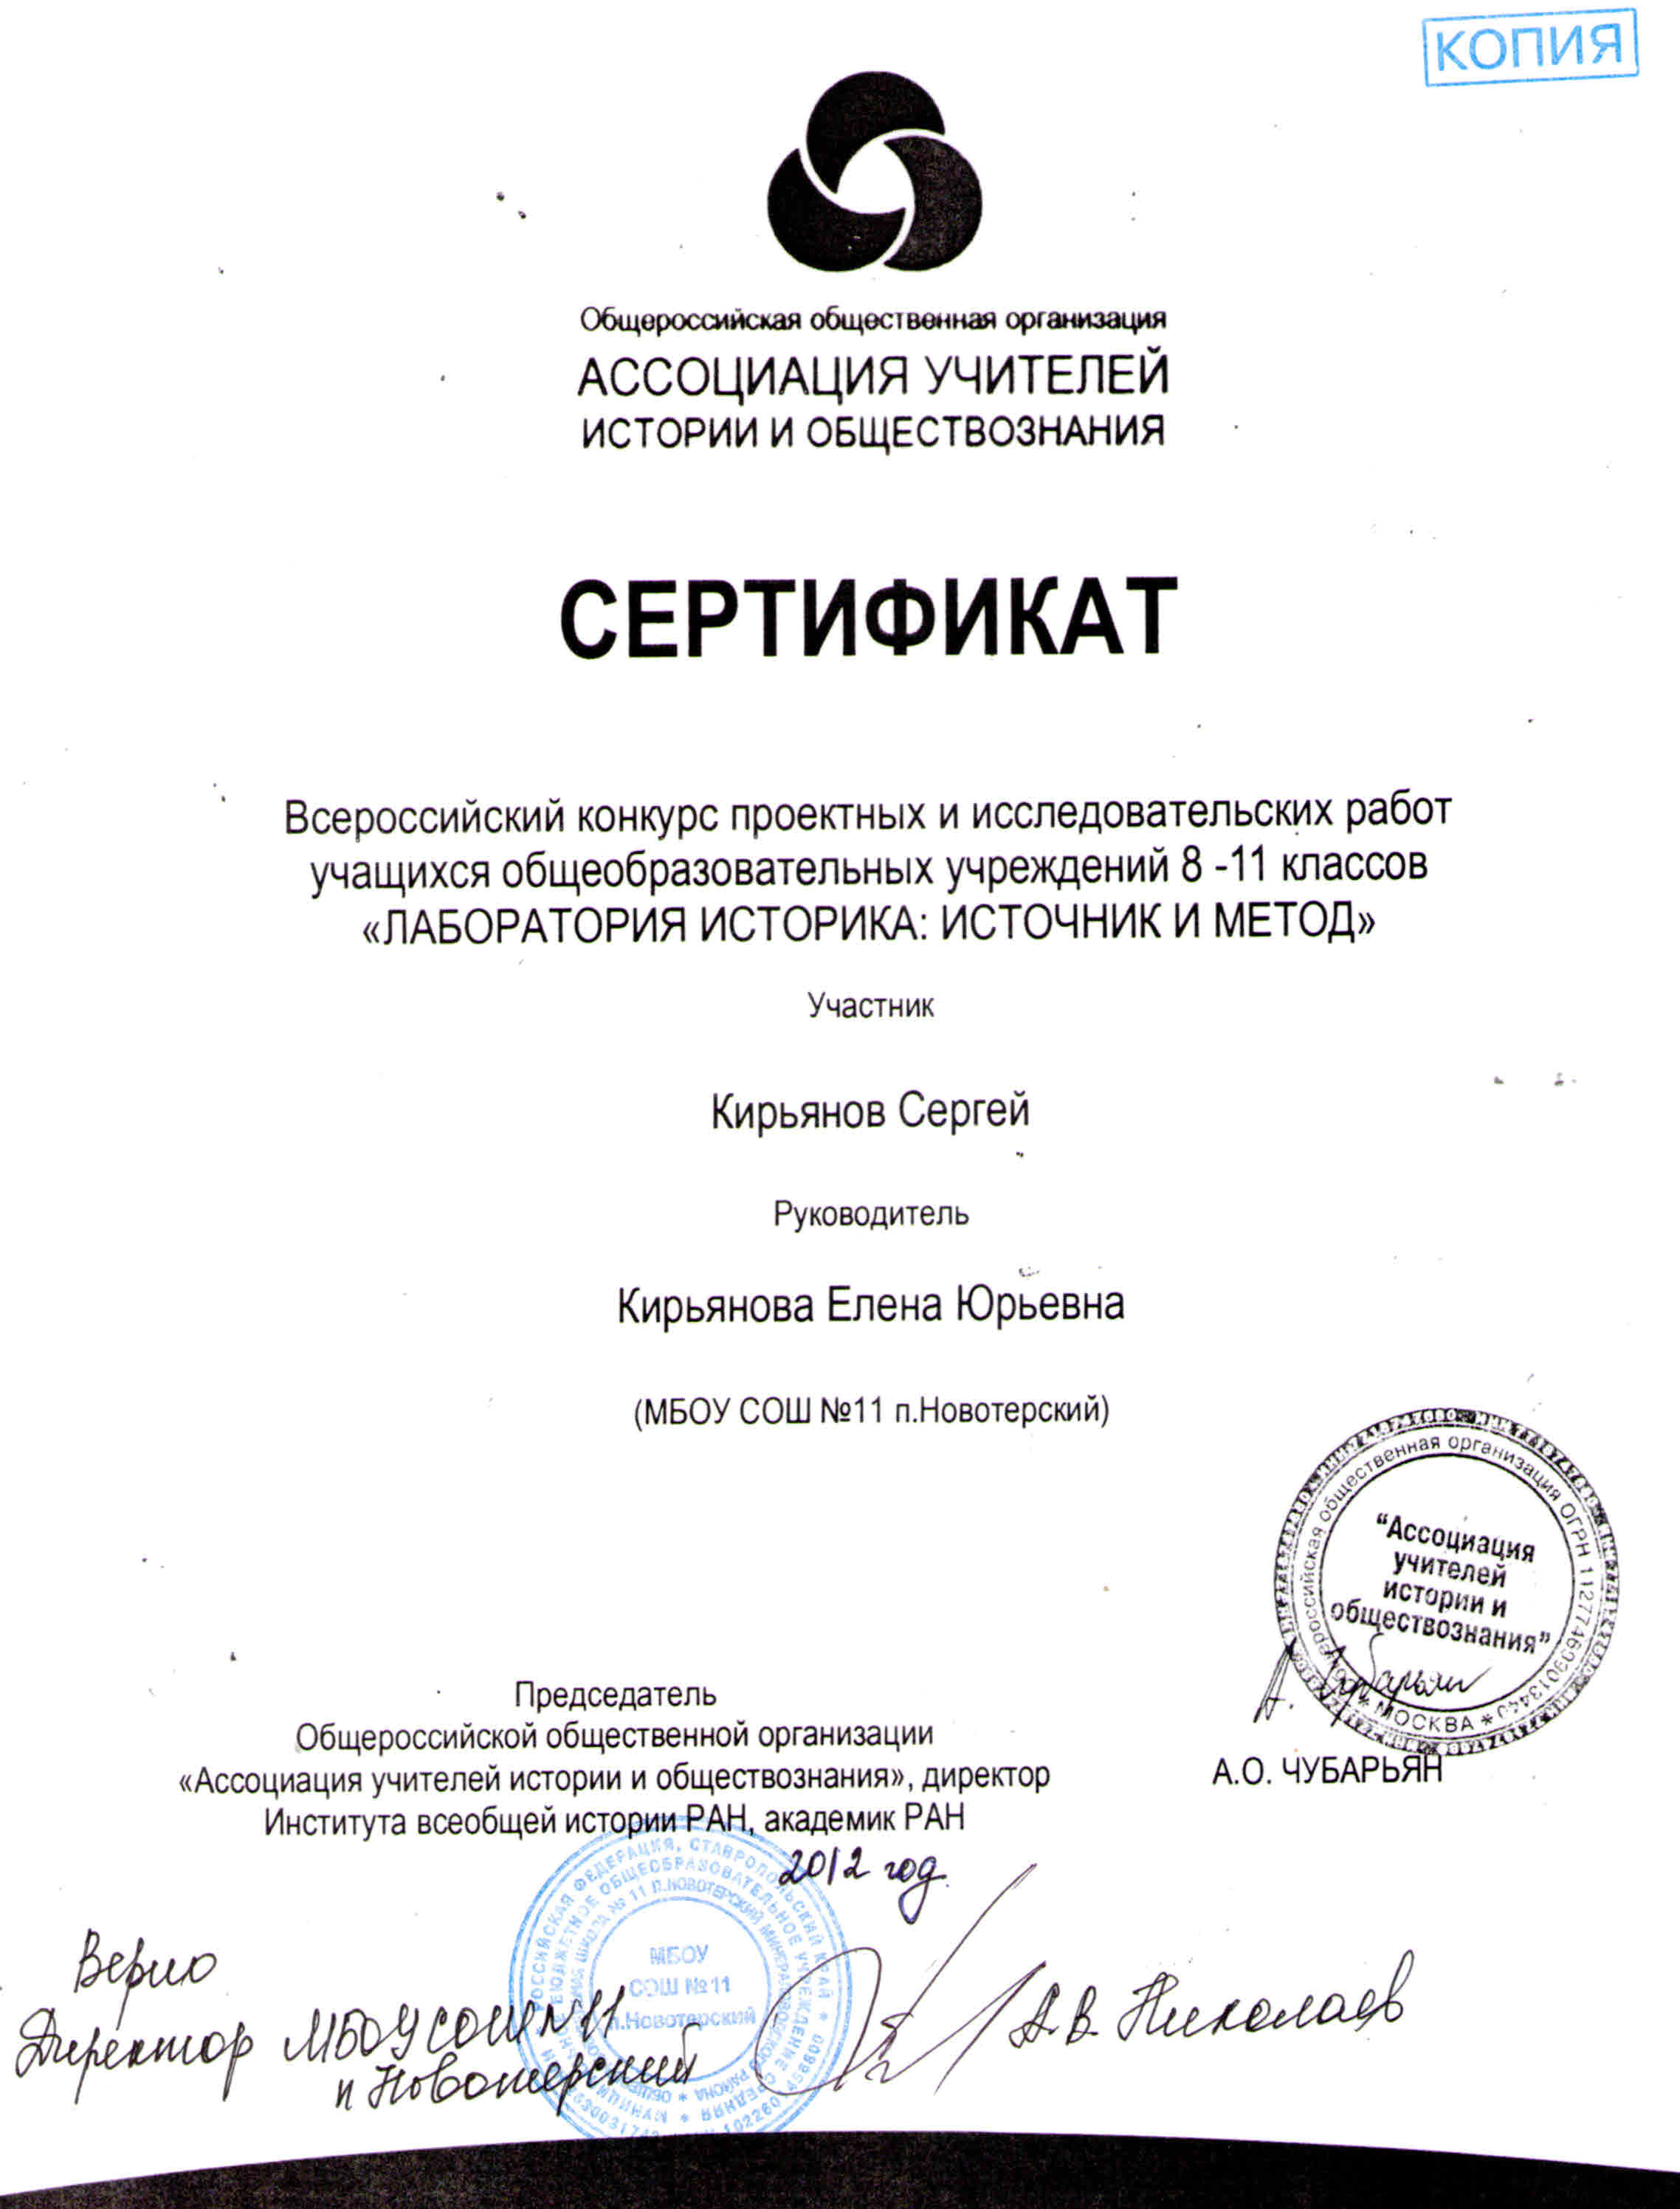 C:\Users\Сергей\Desktop\Document_12.jpg